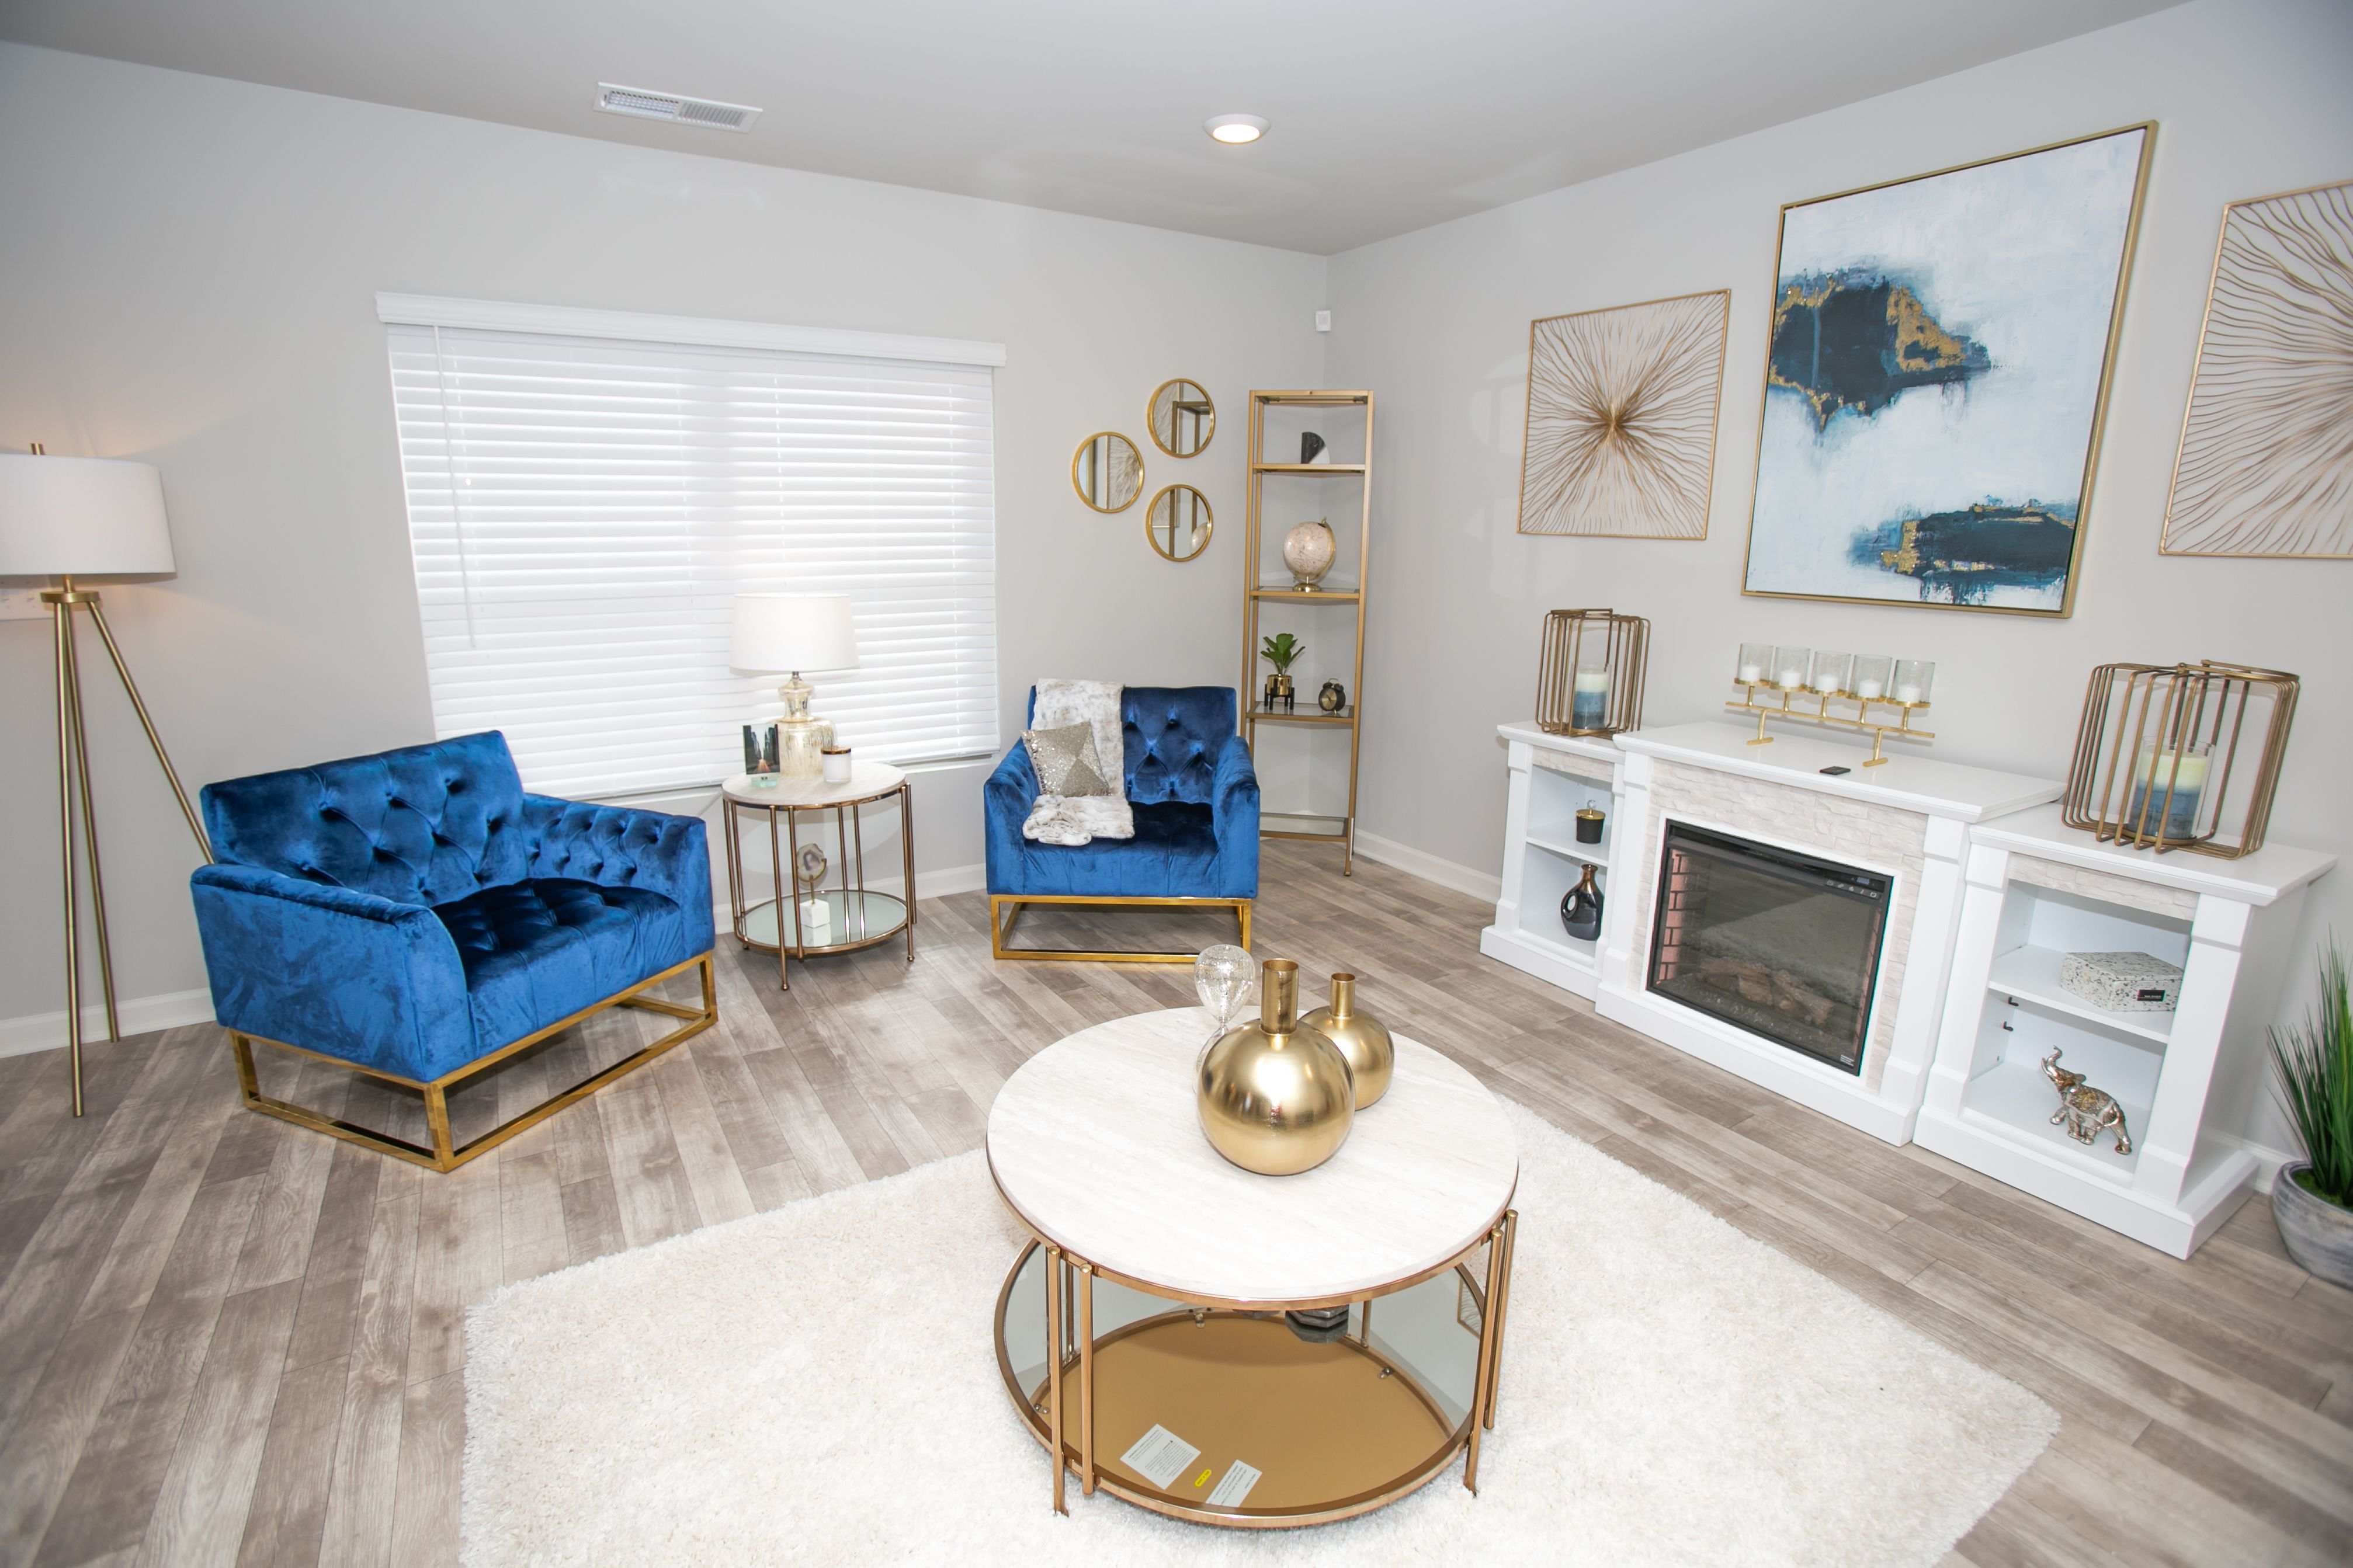 Living Area featured in the Jodeco 2SB By Liberty Communities in Atlanta, GA